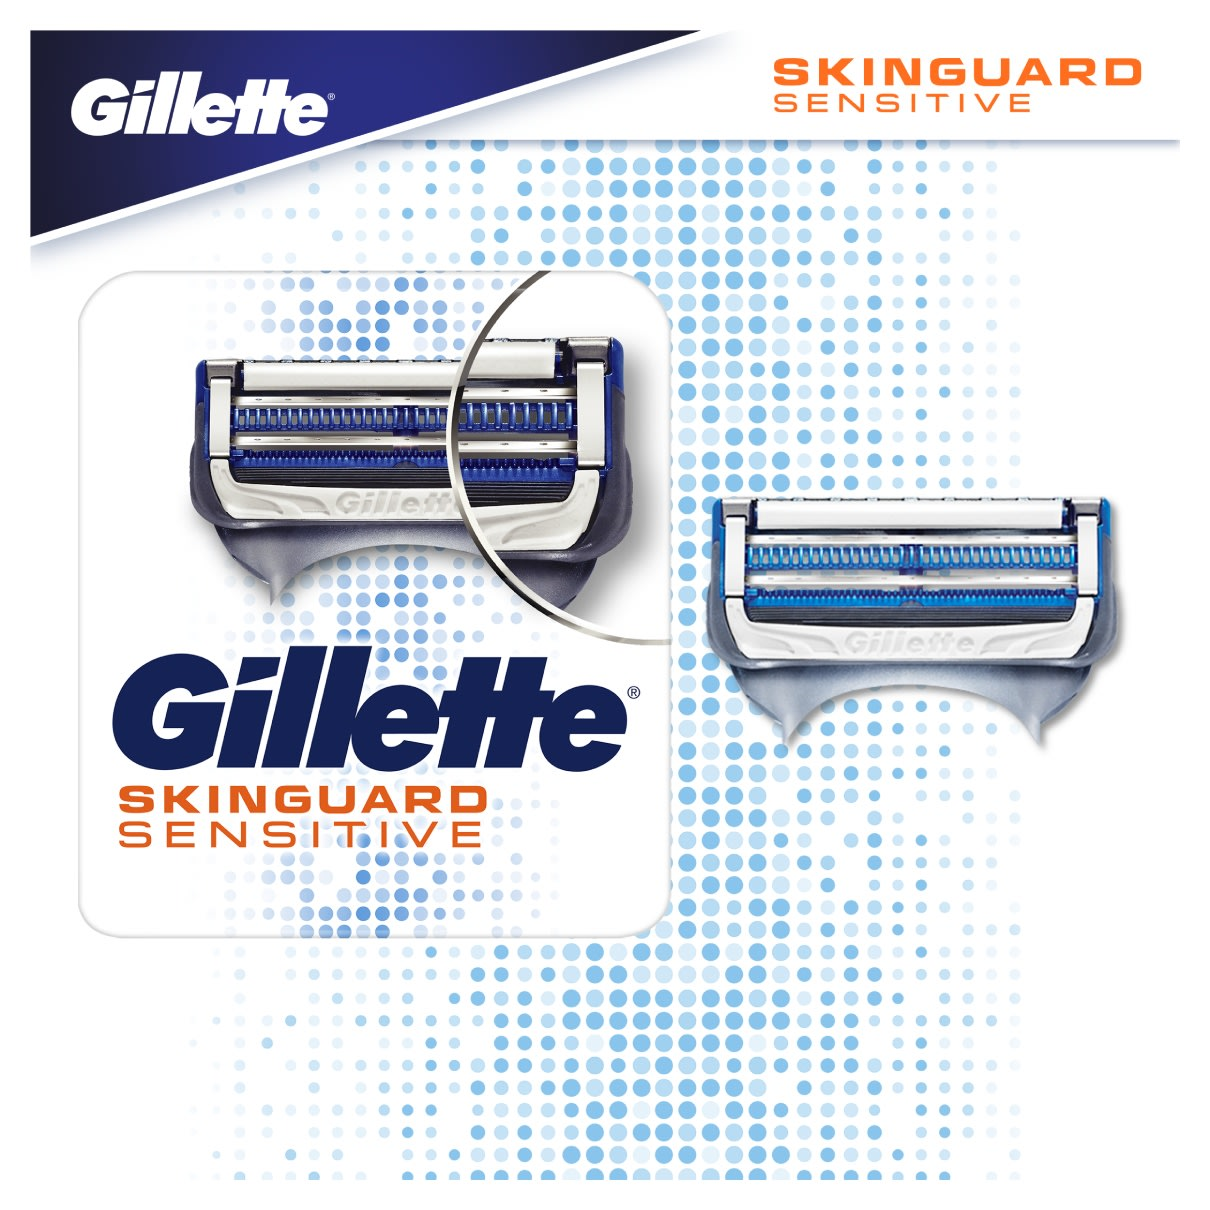 Skinguard Sensitive Razor Blades For Sensitive Skin